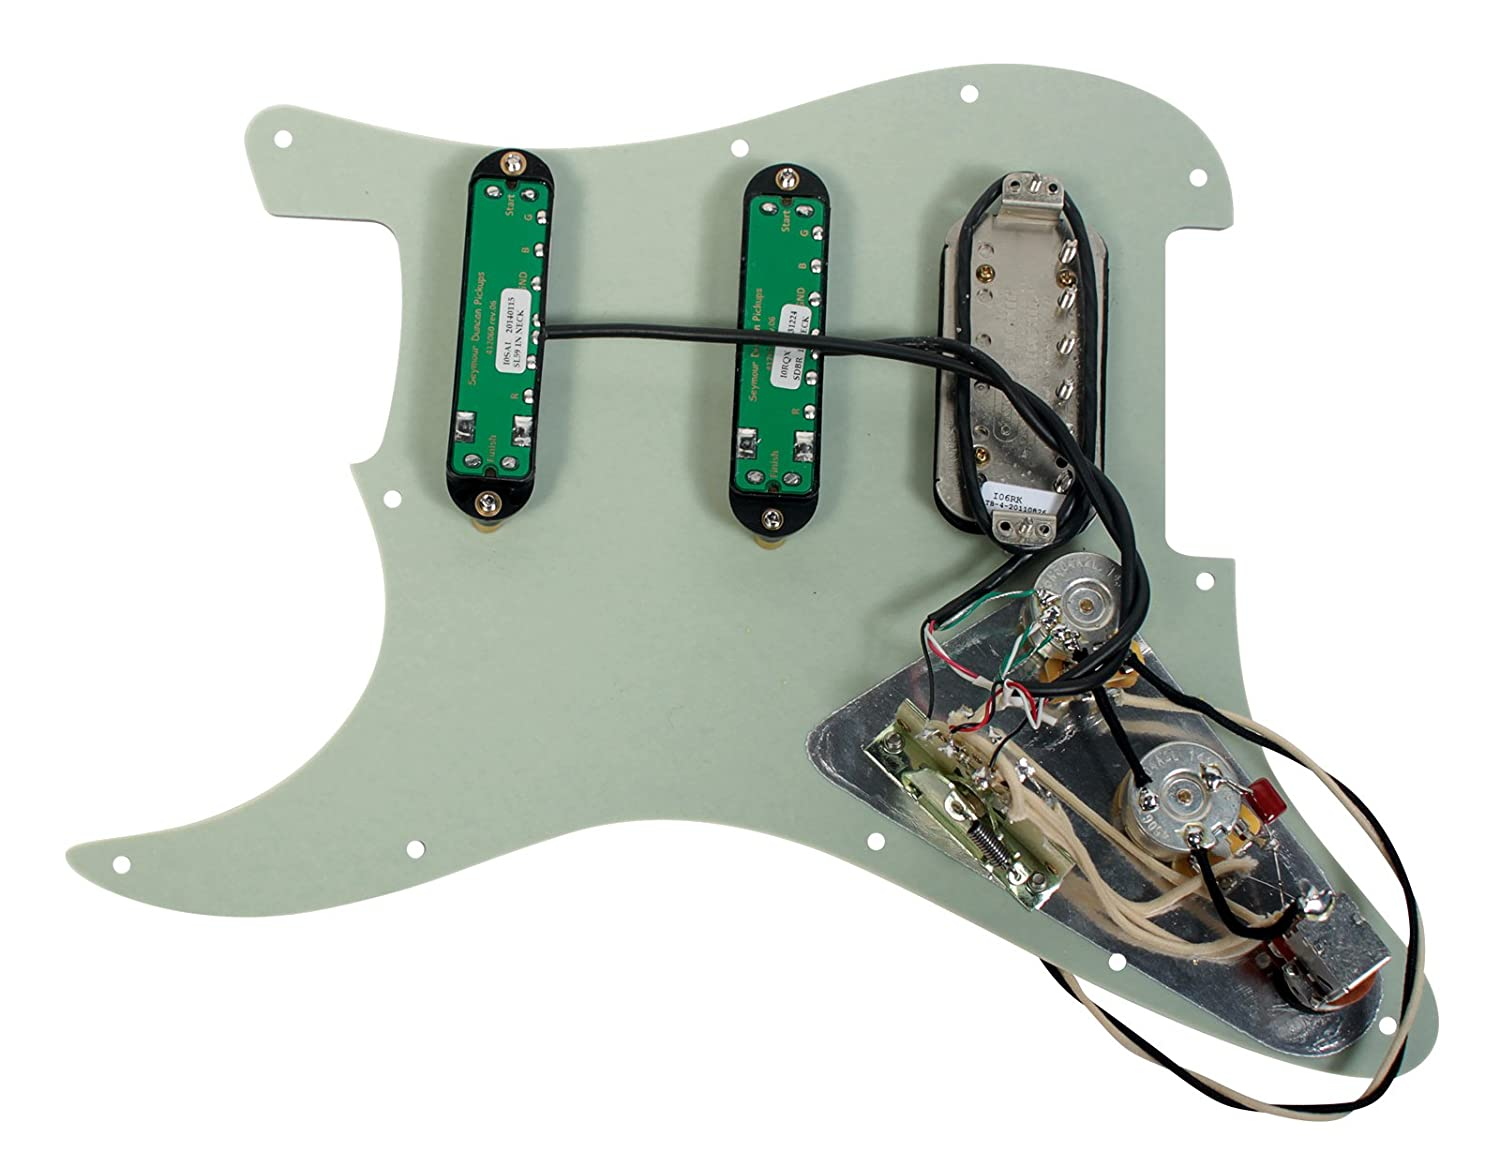 Seymour Duncan Fat Everything Loaded Strat Pickguard Us Power Cableusa Cableamerica Cable Bk Industrial Tortoise Black Musical Instruments